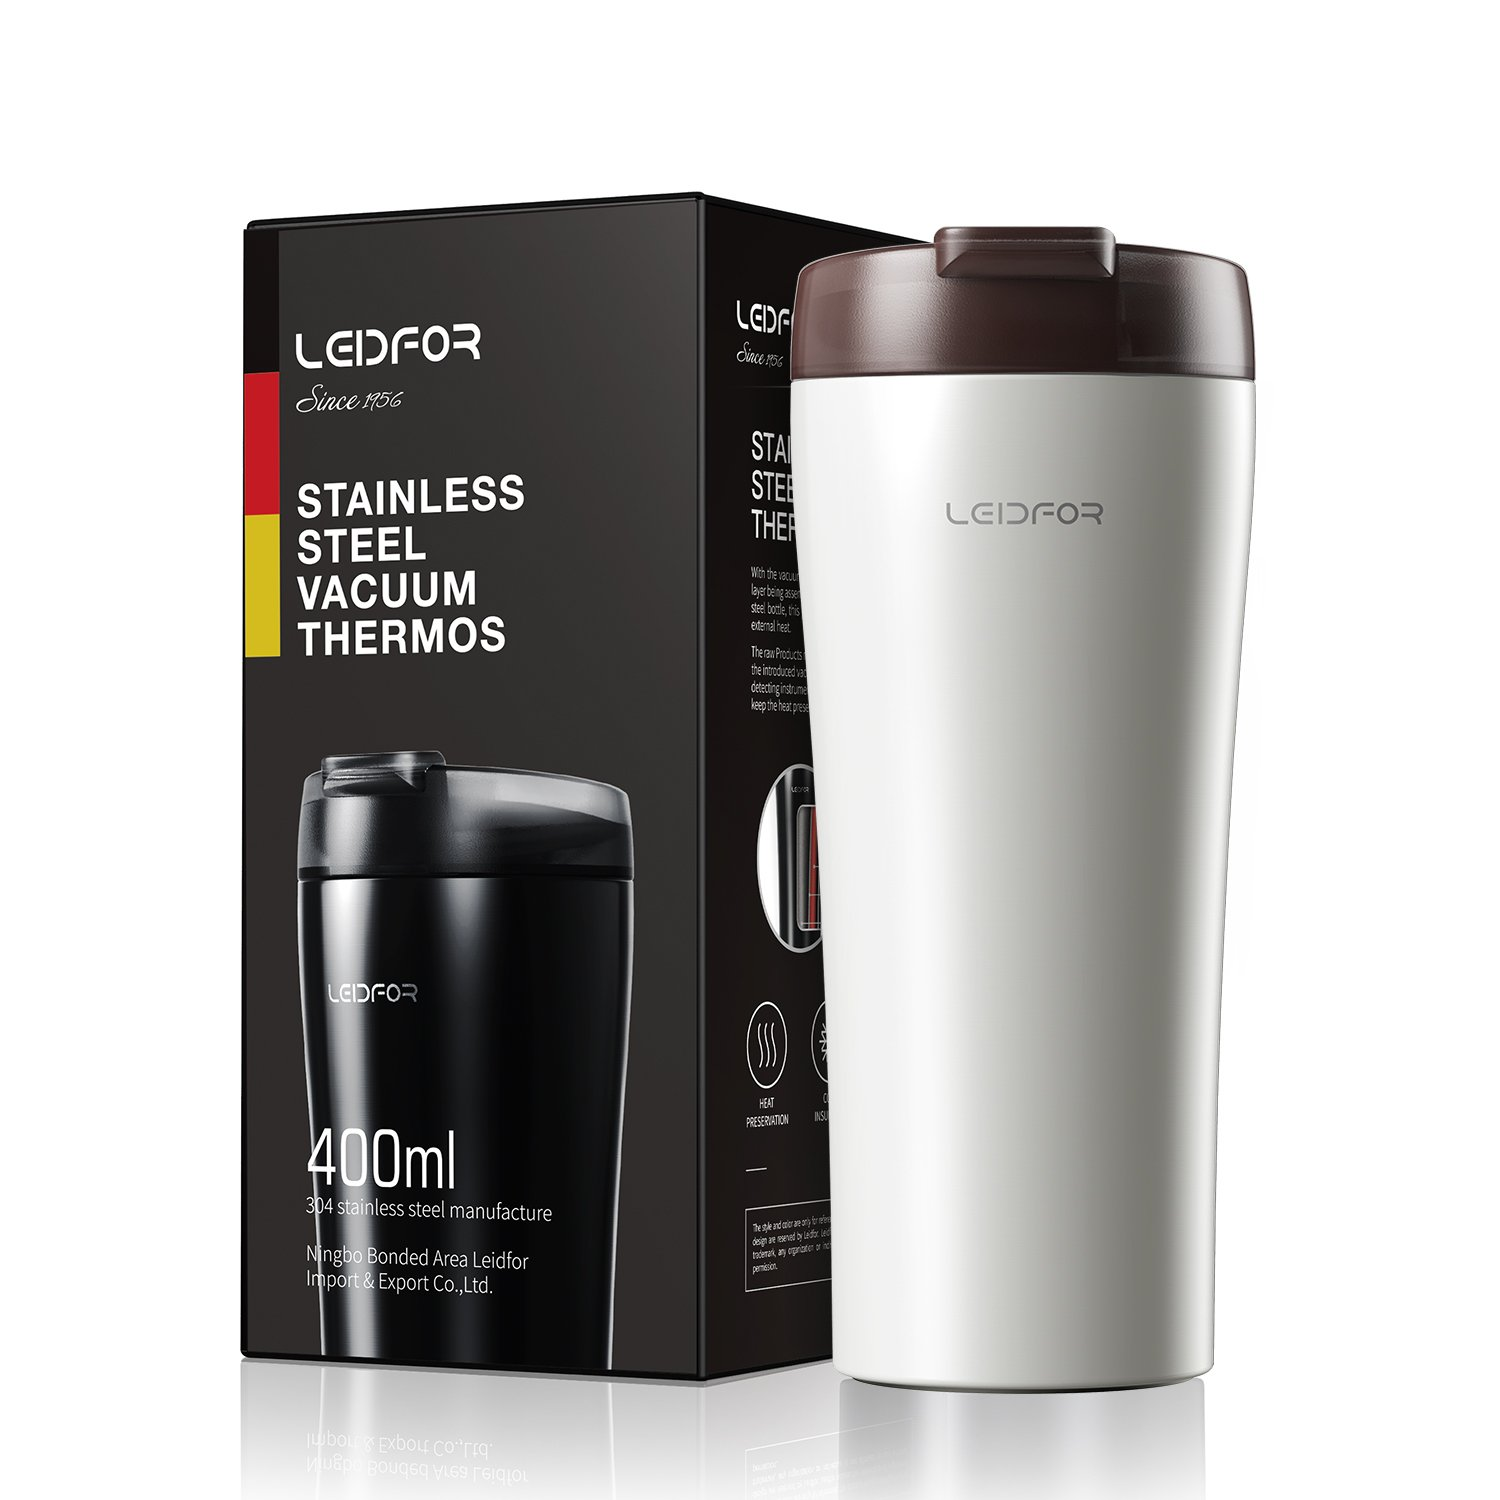 Coffee Travel Mug,Stainless Steel Vacuum Insulated Tumbler 16ounce, Thermos Cup With Lid WHITE